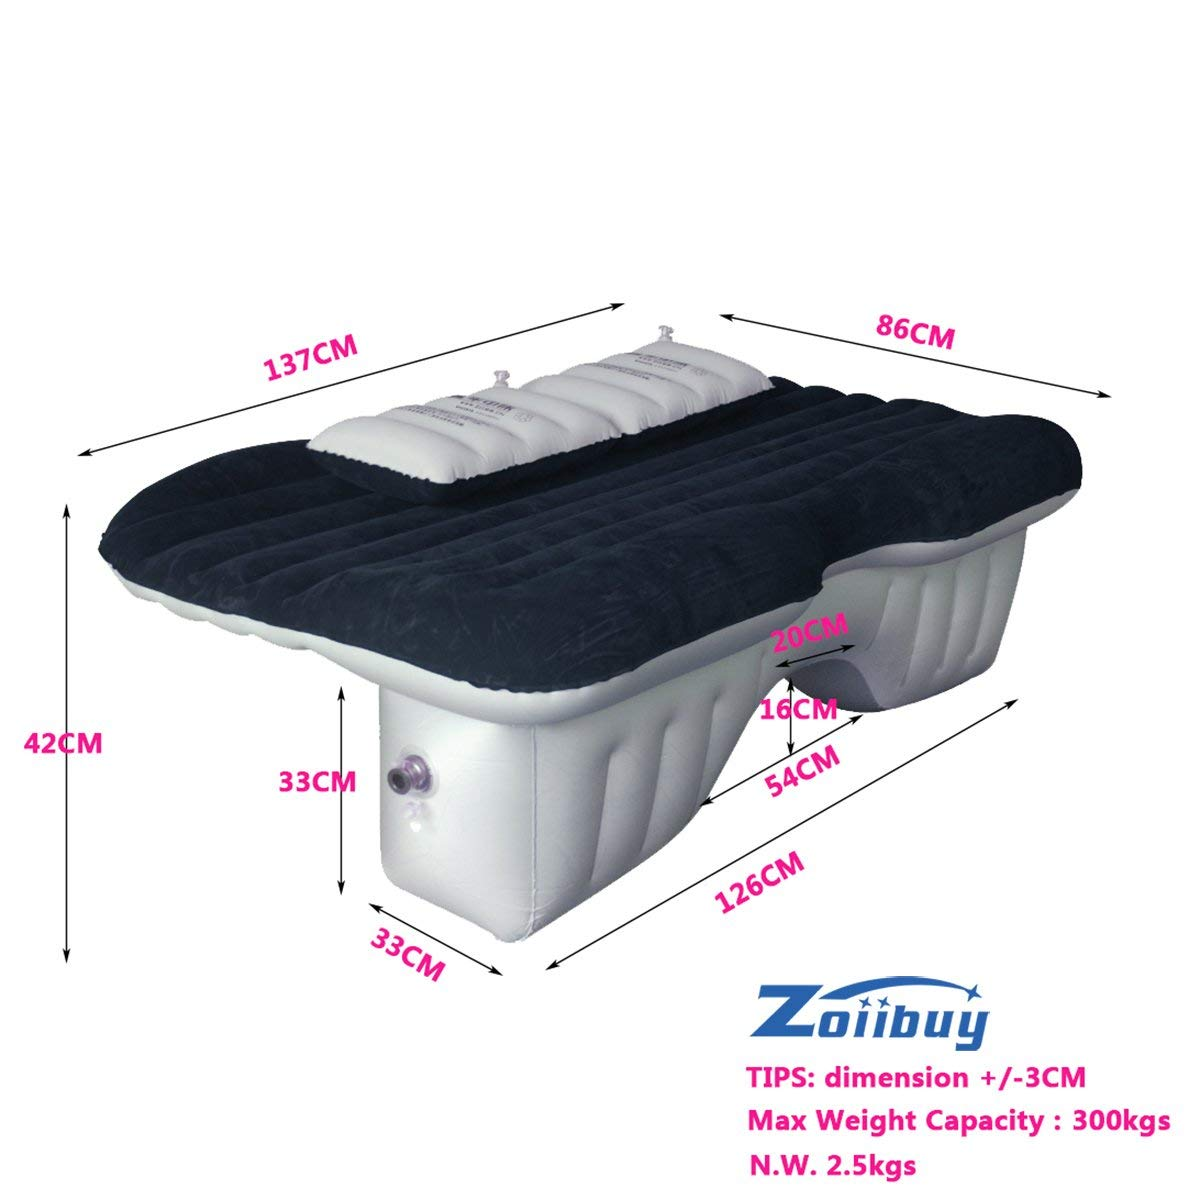 ZOIIBUY Car Inflatable Mattress Portable Travel Camping Air Bed Foldable Couch with 2 Pillows and Air Pump